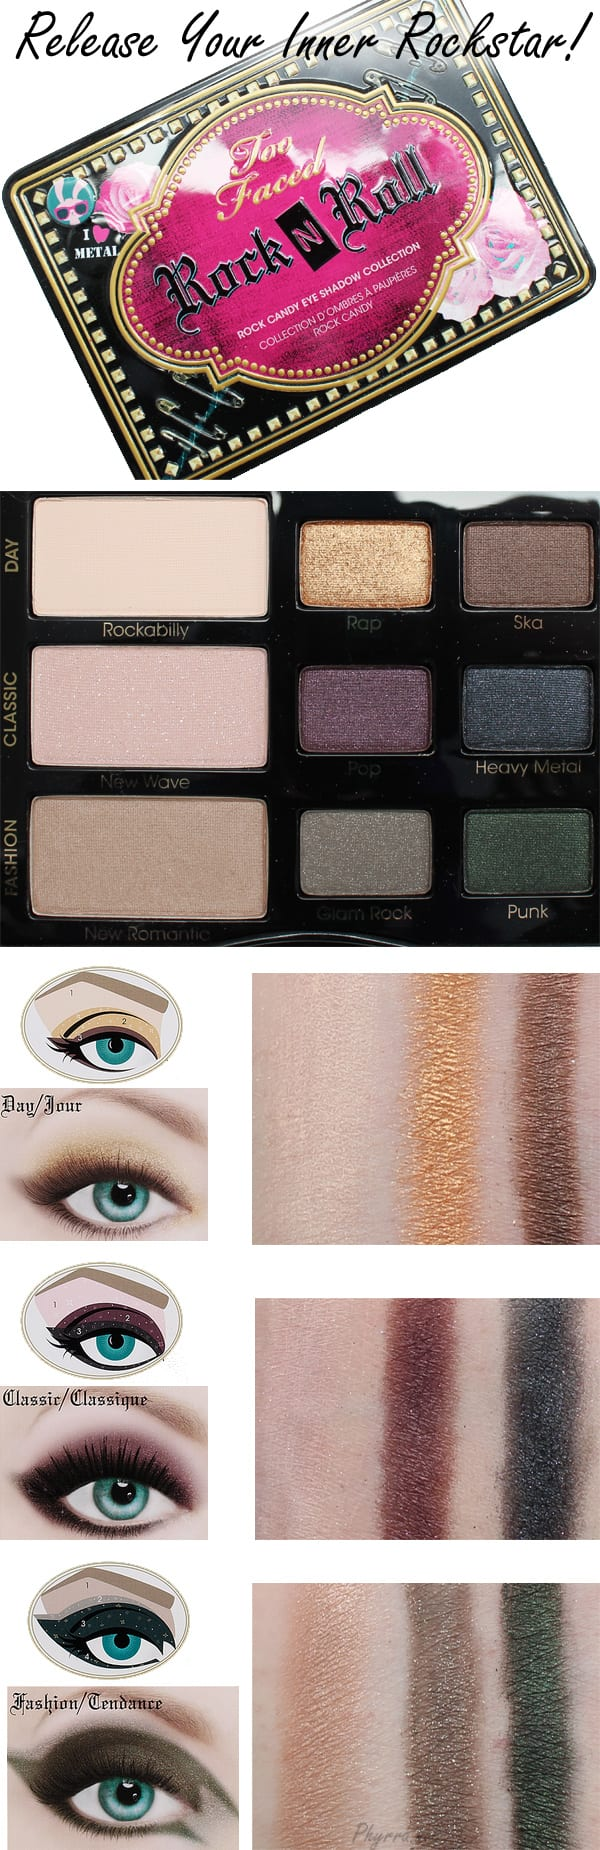 Too Faced Rock n' Roll Palette Review Swatches Video